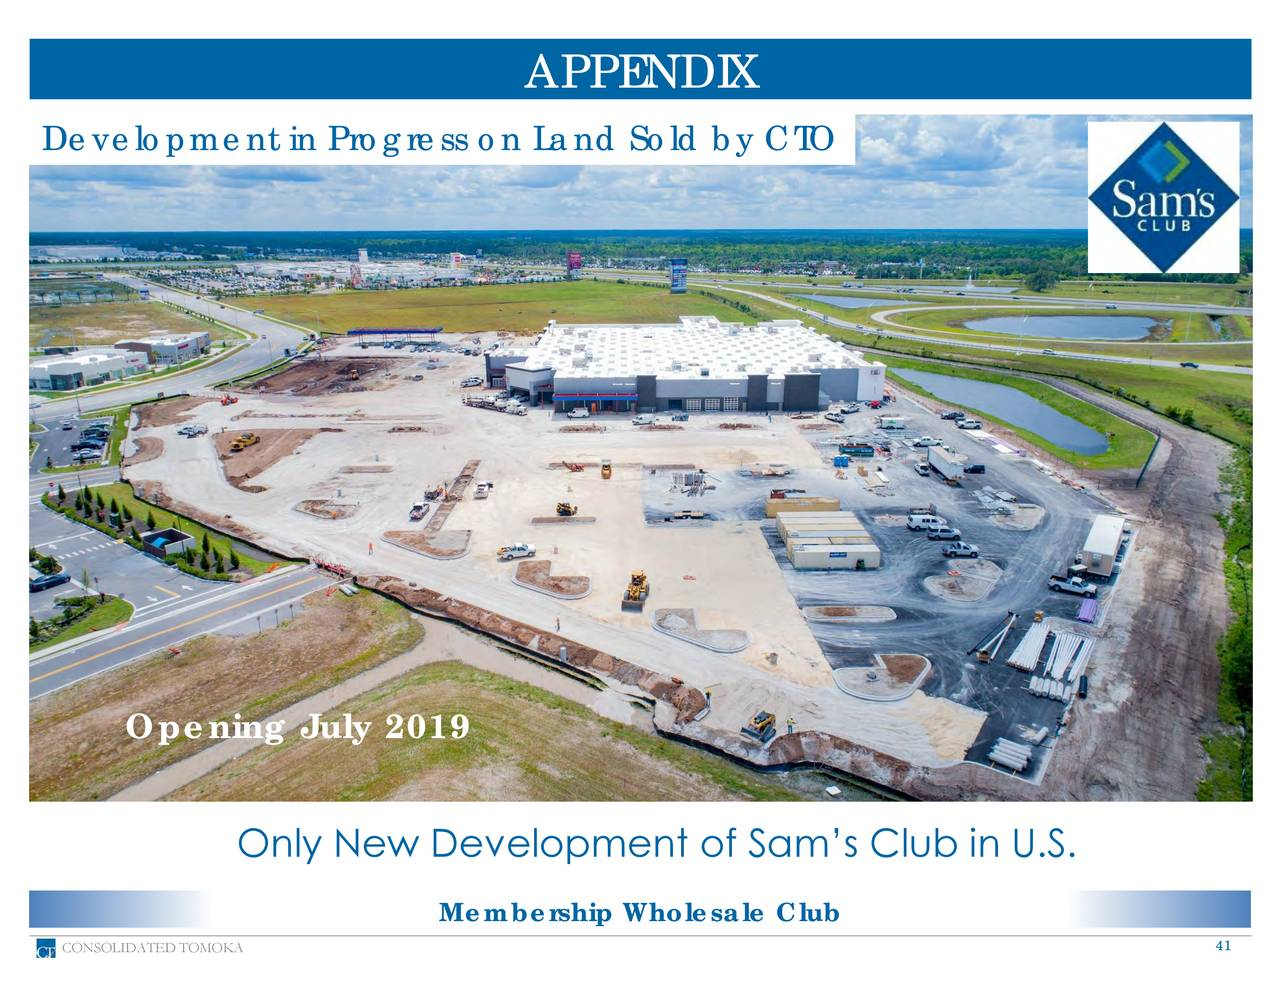 Development in Progress on Land Sold by CTO Opening July 2019 Only New Development of Sam's Club in U.S. Membership Wholesale Club CONSOLIDATED TOMOKA 41